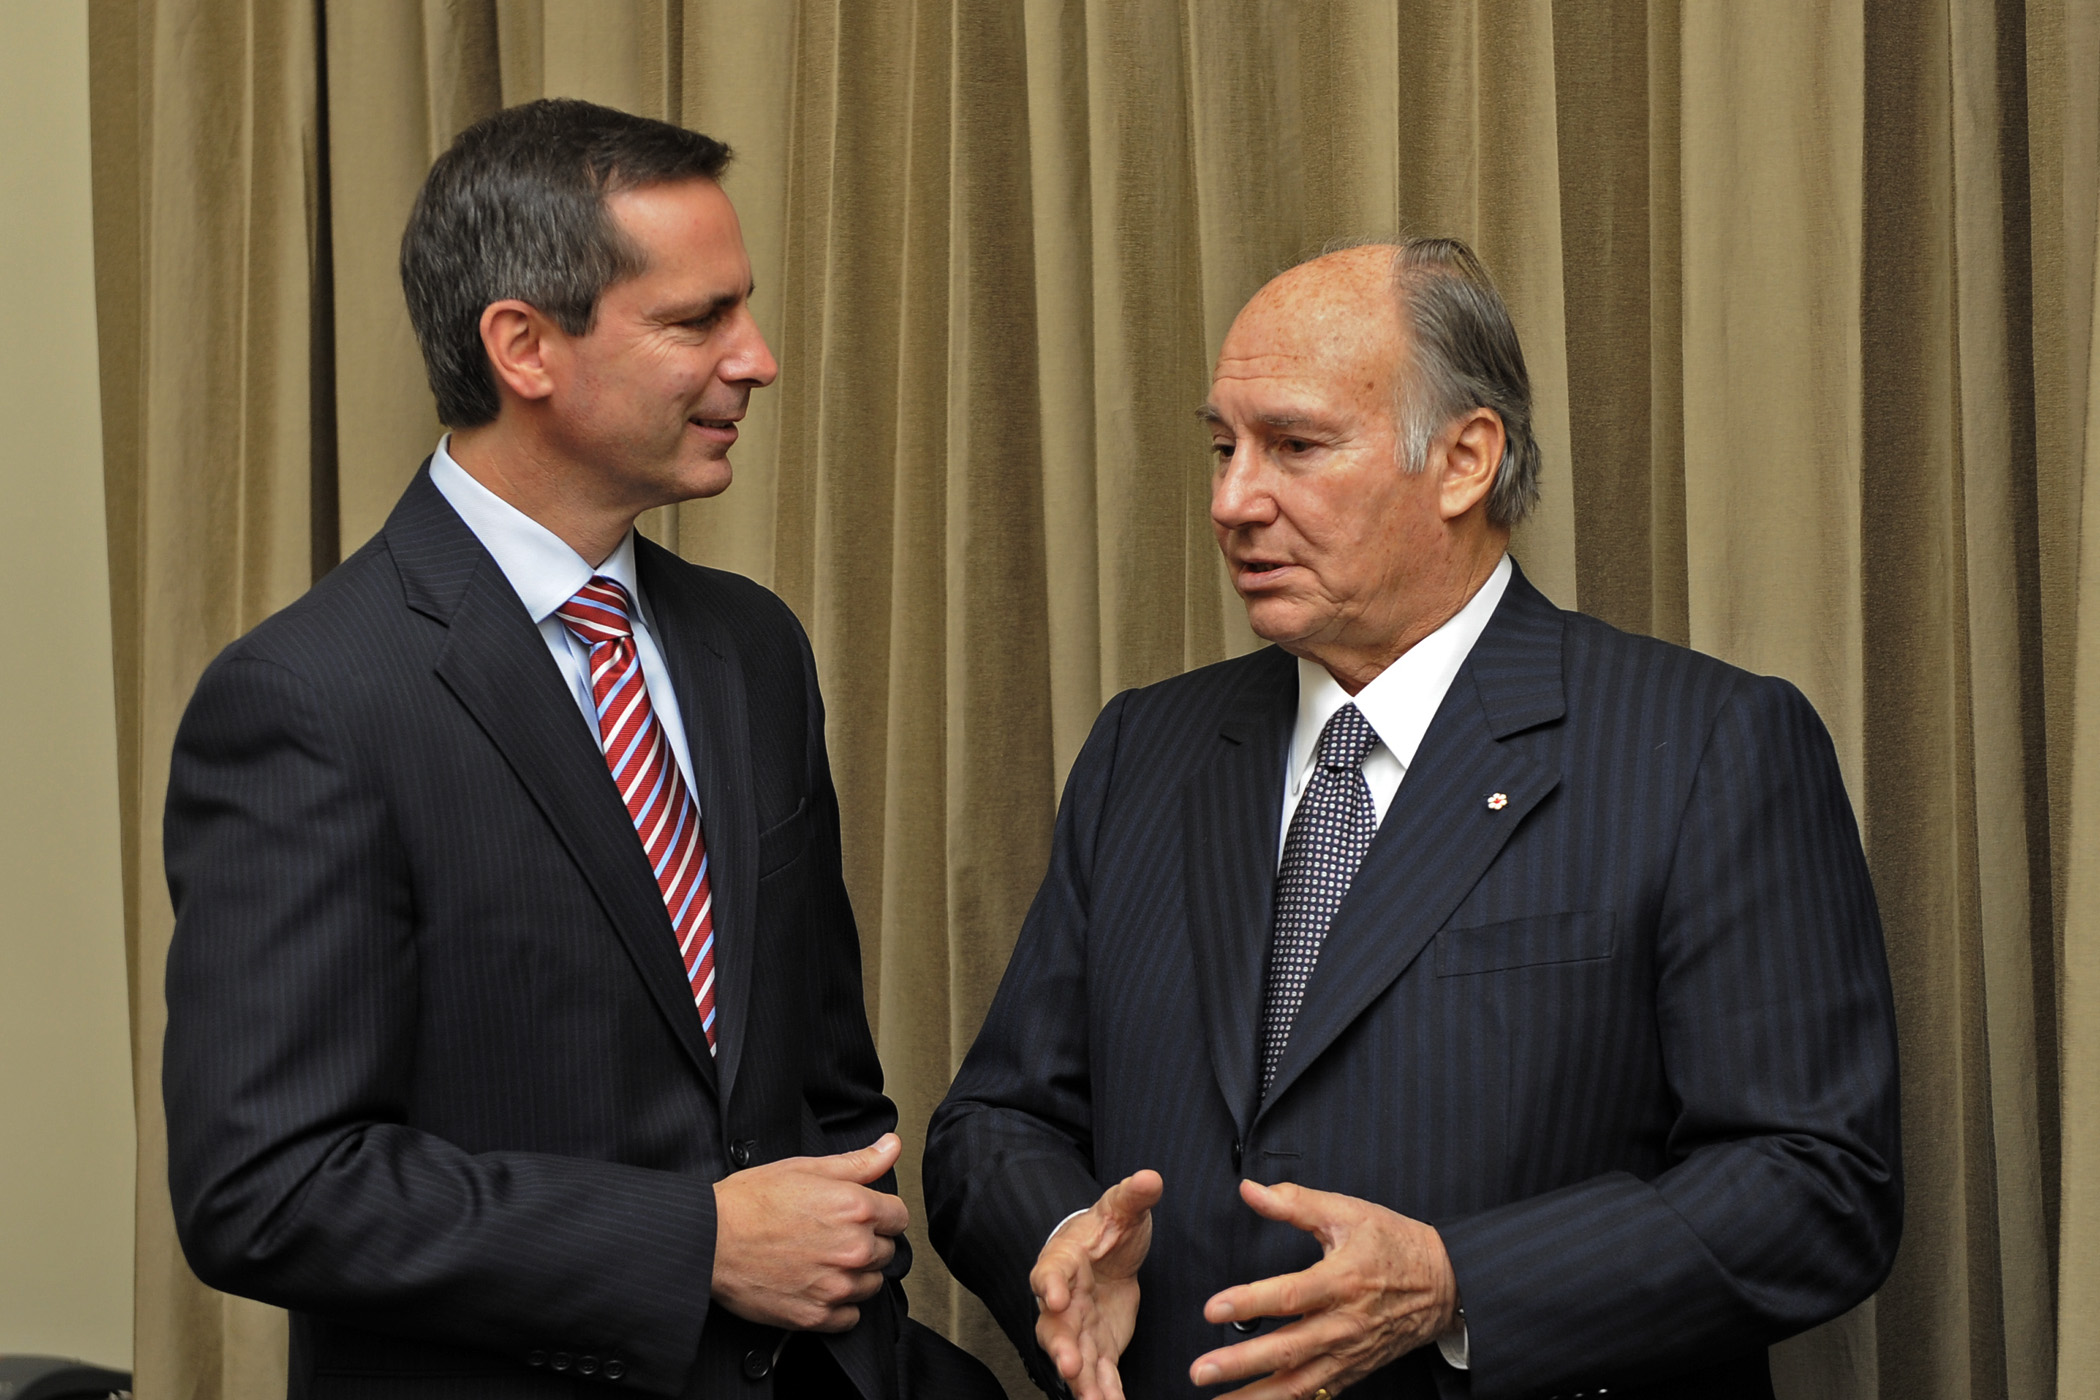 Mawlana Hazar Imam and Ontario Premier Dalton McGuinty at Queens Park. Photo: Gary Otte